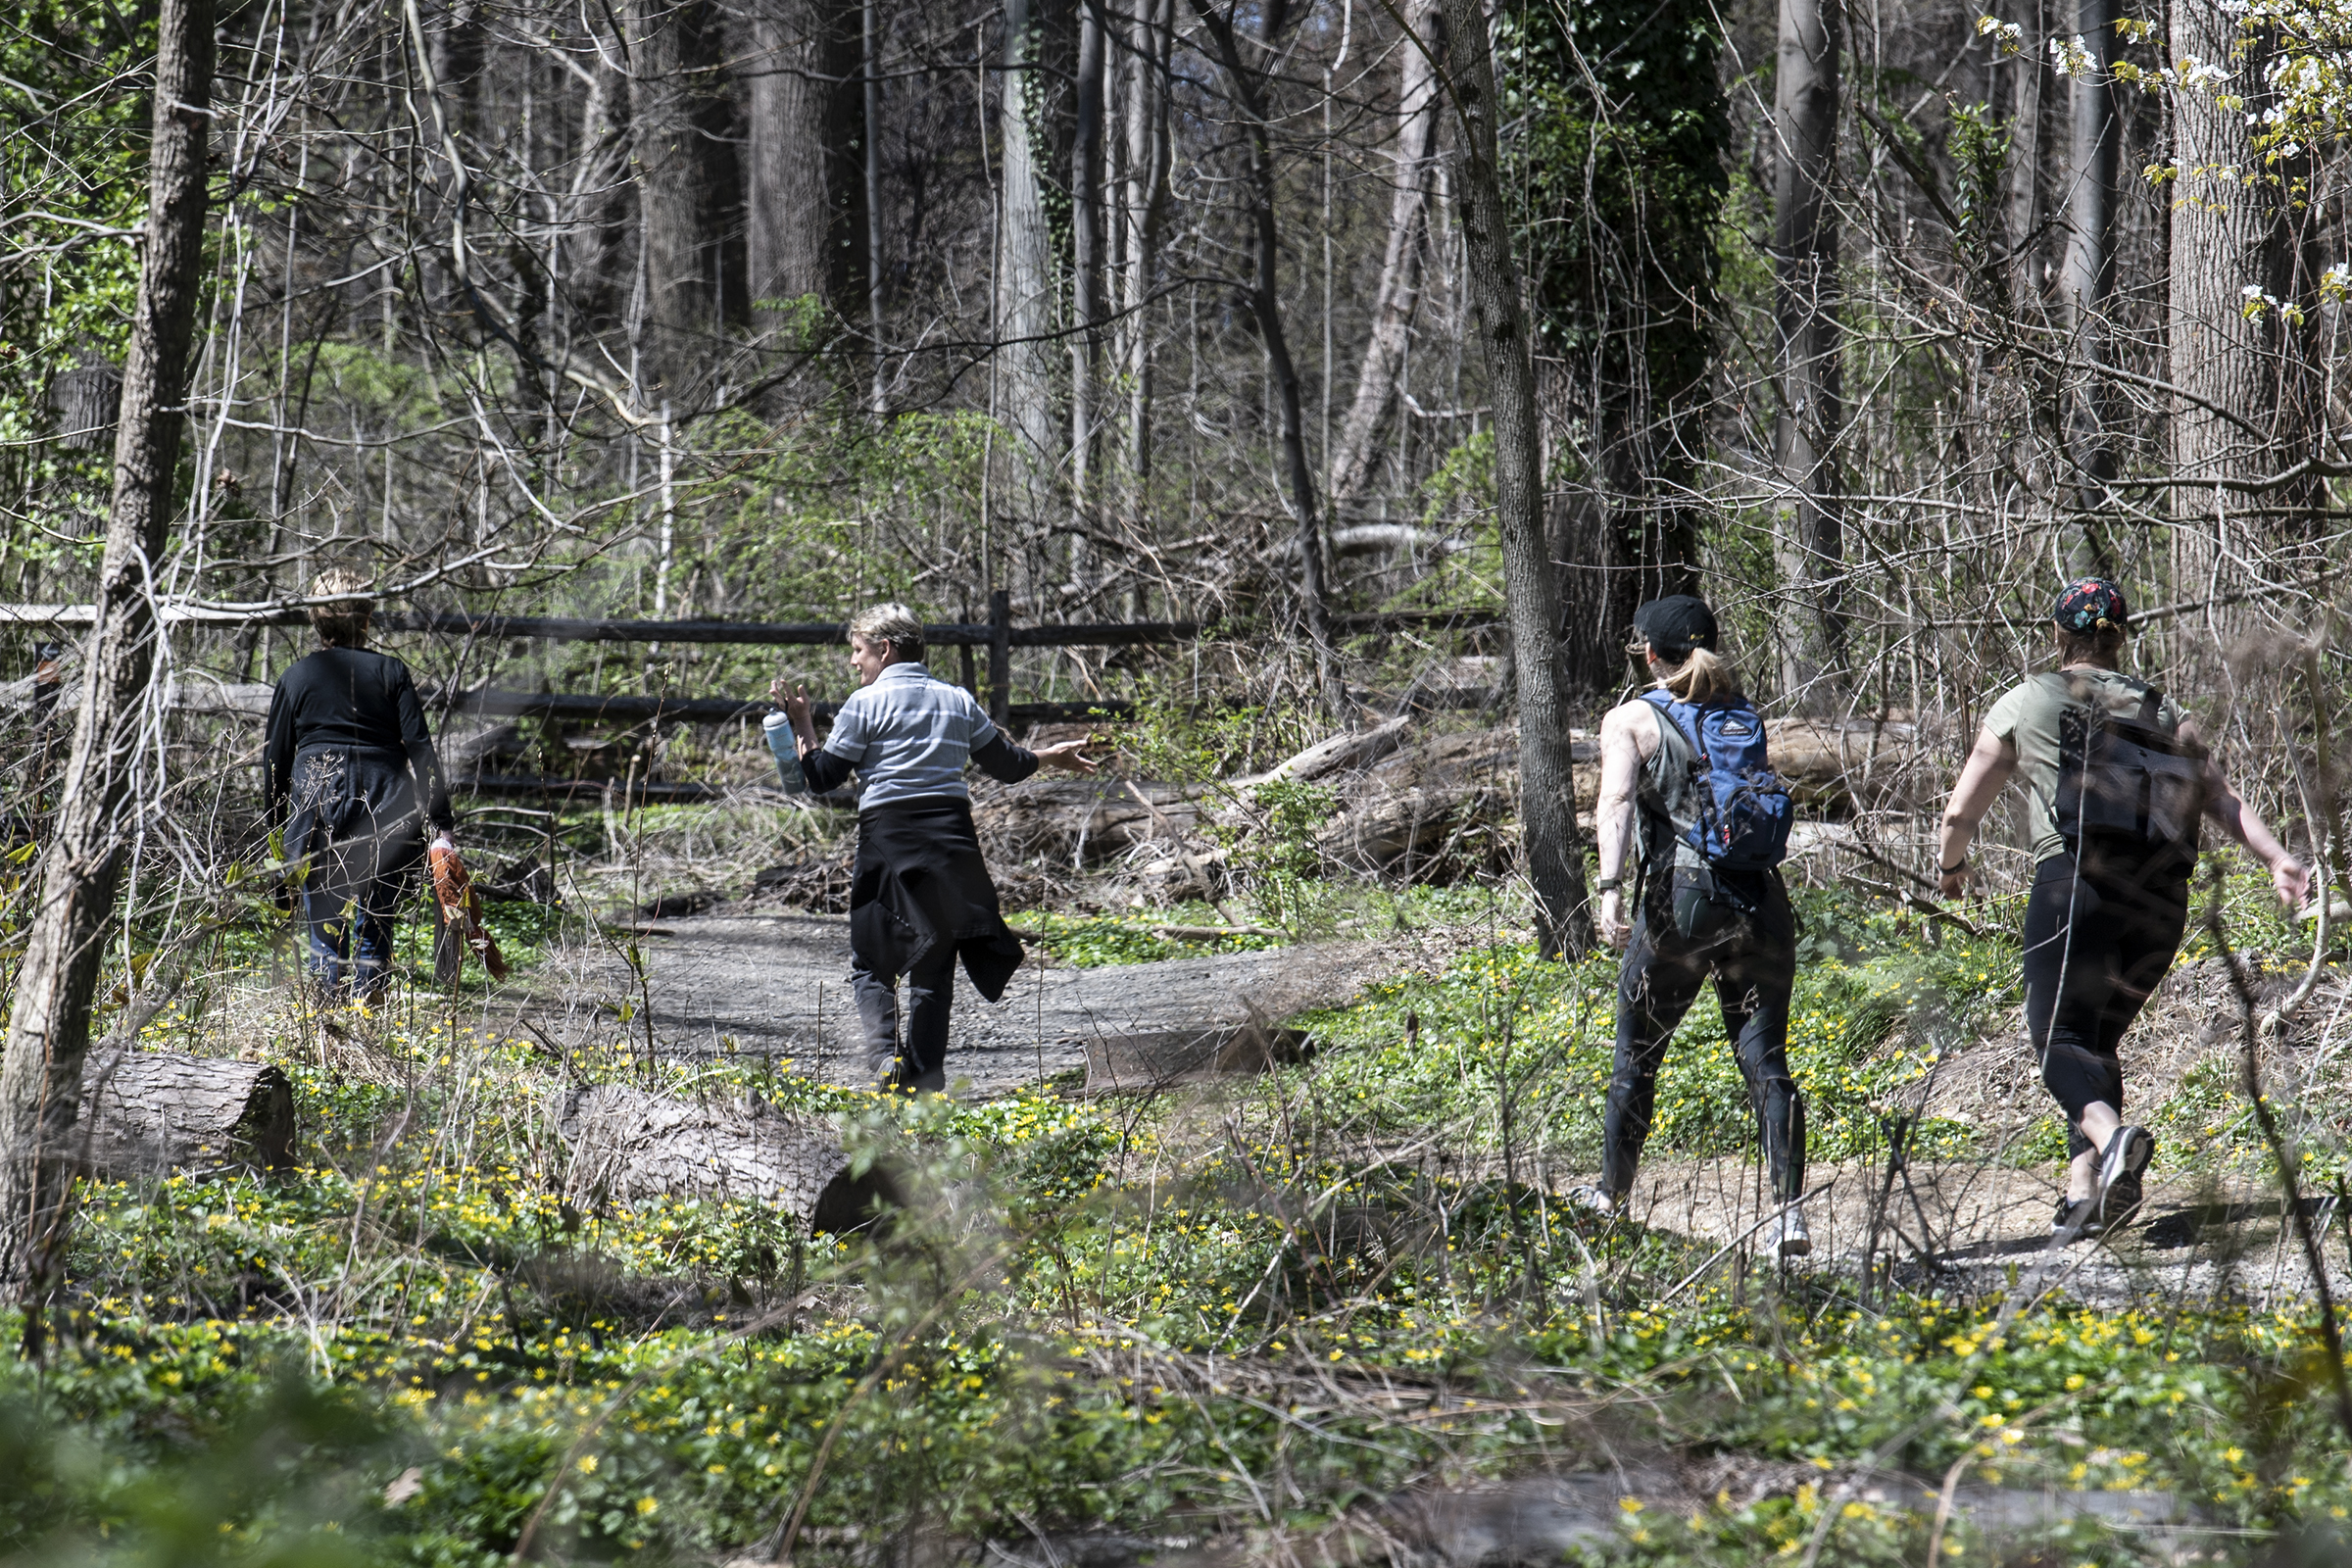 People hike the trails at Wissahickon Valley Park during an sunny morning on Monday, April 6, 2020. The Park is seeing summer-level crowds, despite Gov. Wolf's stay-at-home order, and the result is taxing those who operate the 1,800 acres of forest, and trails.